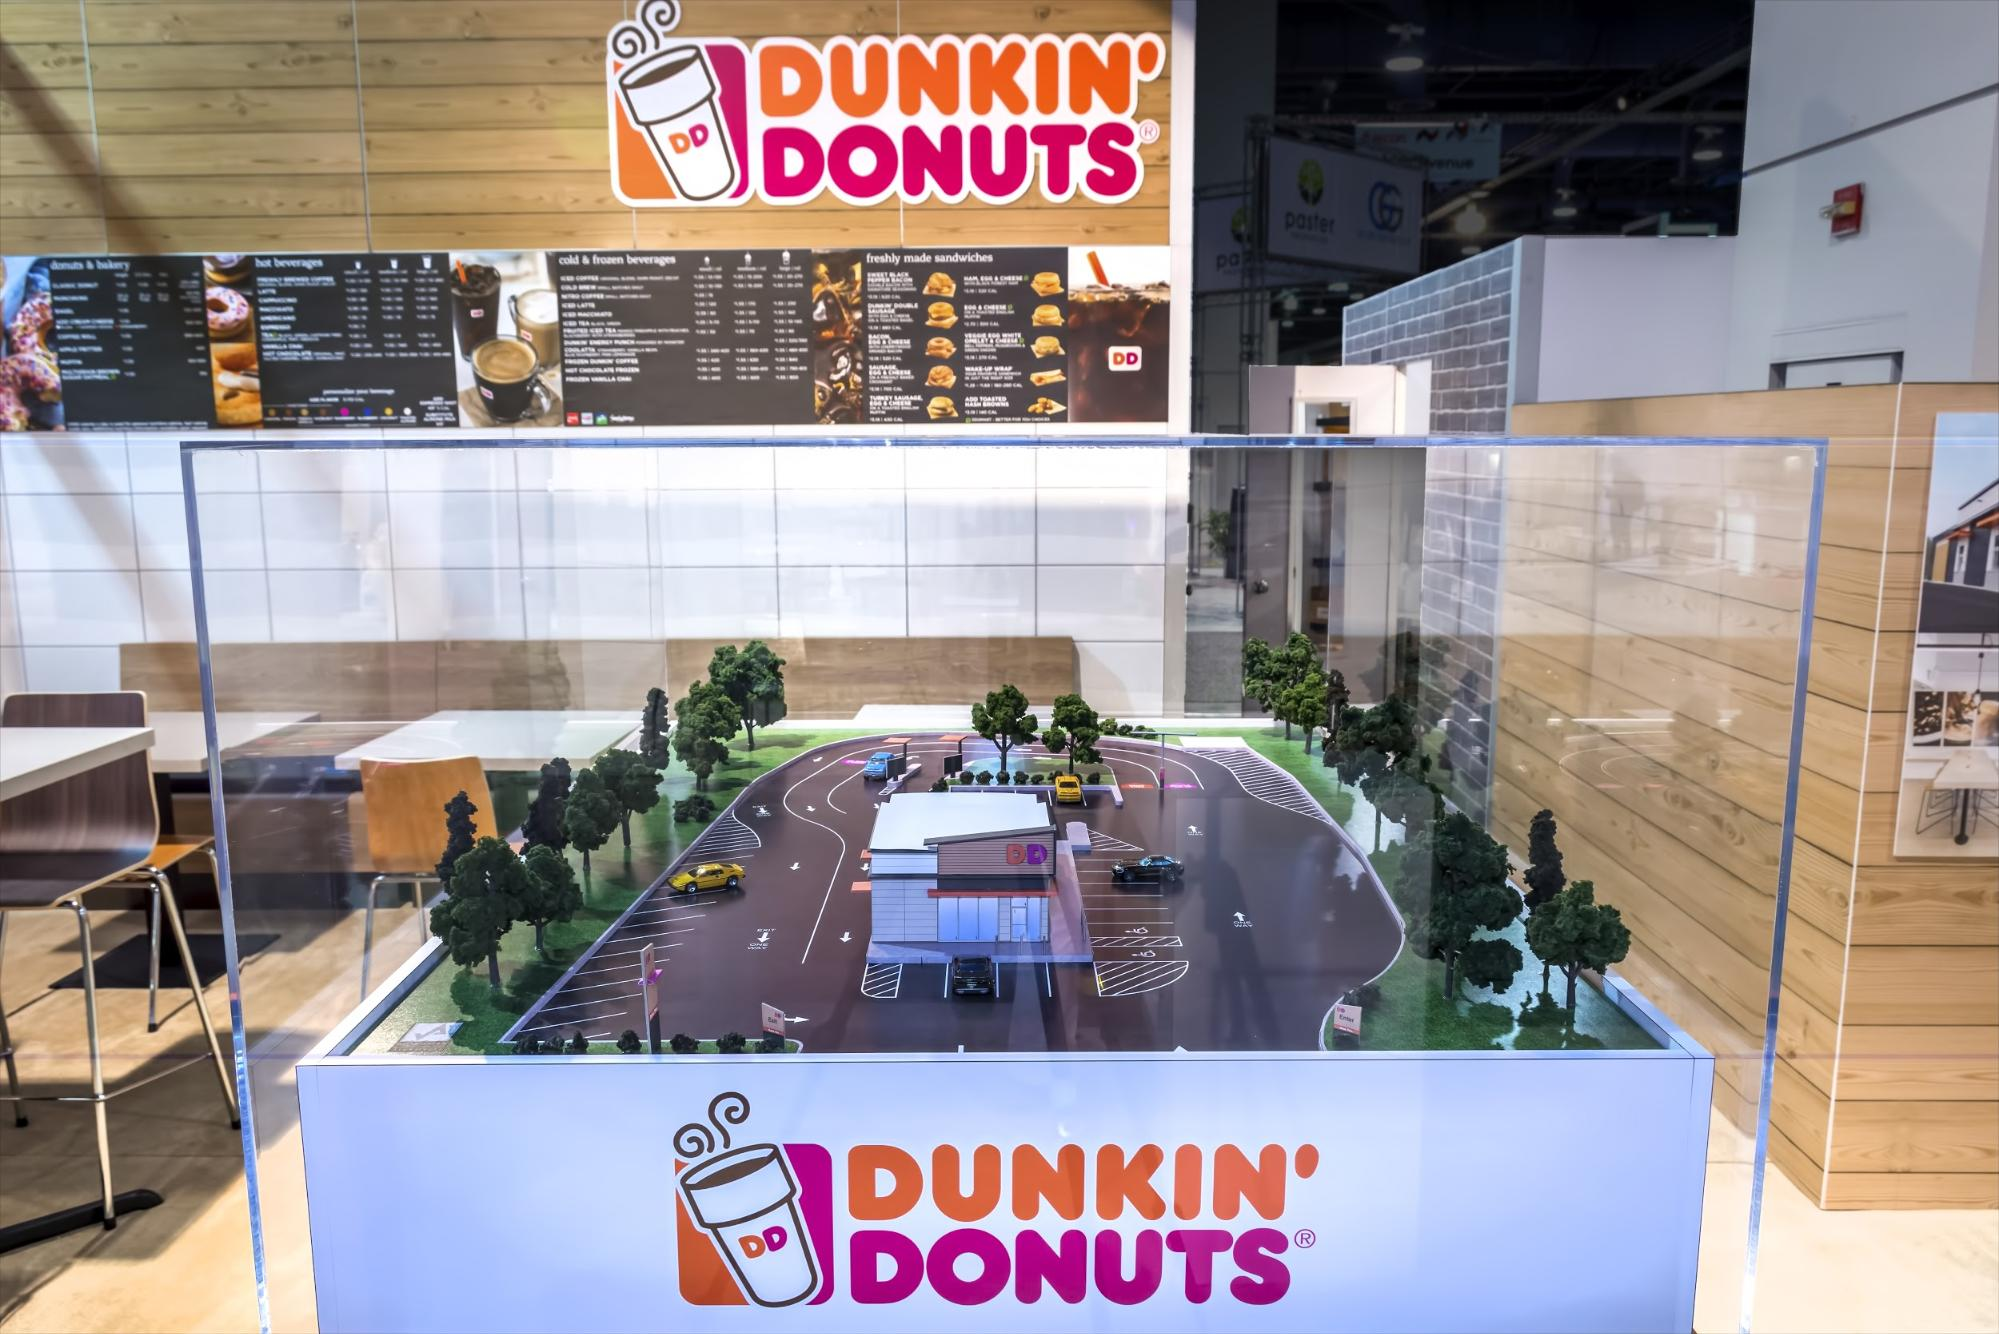 Dunkin' Donuts trade show booth with small-scale model of the store